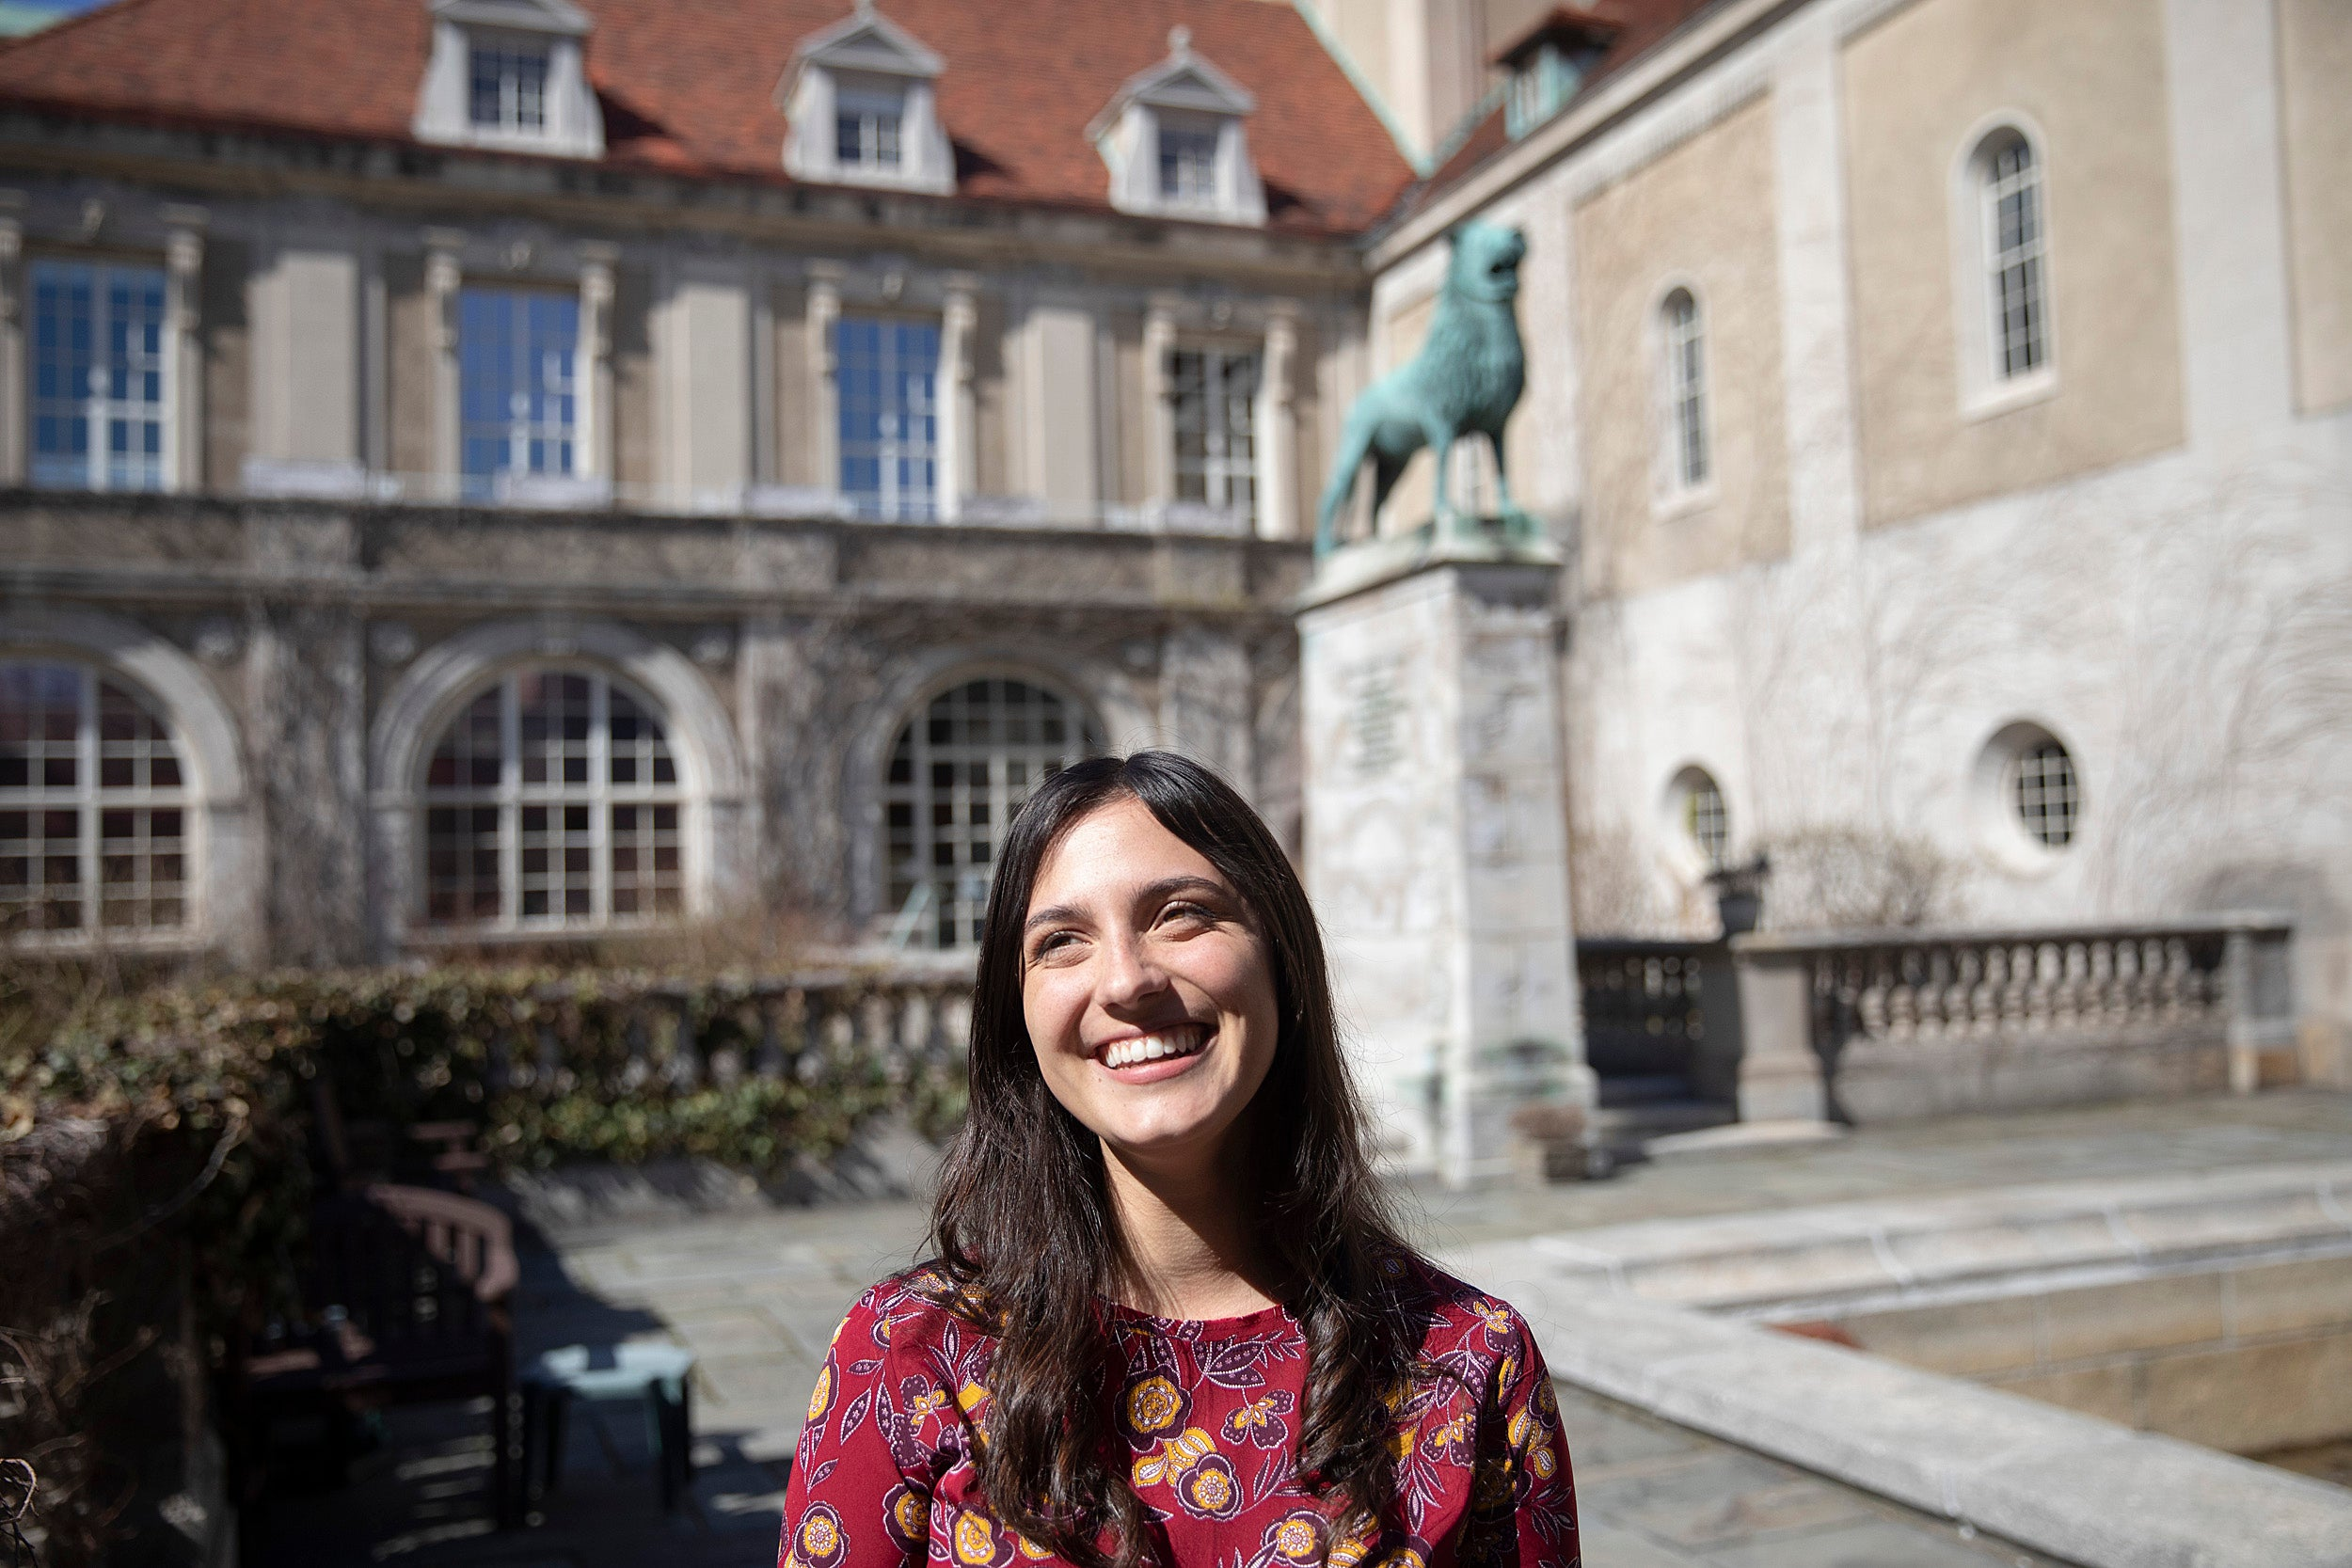 Sara Bobok's original research and thesis make inroads into understanding Hungary's youth and politics